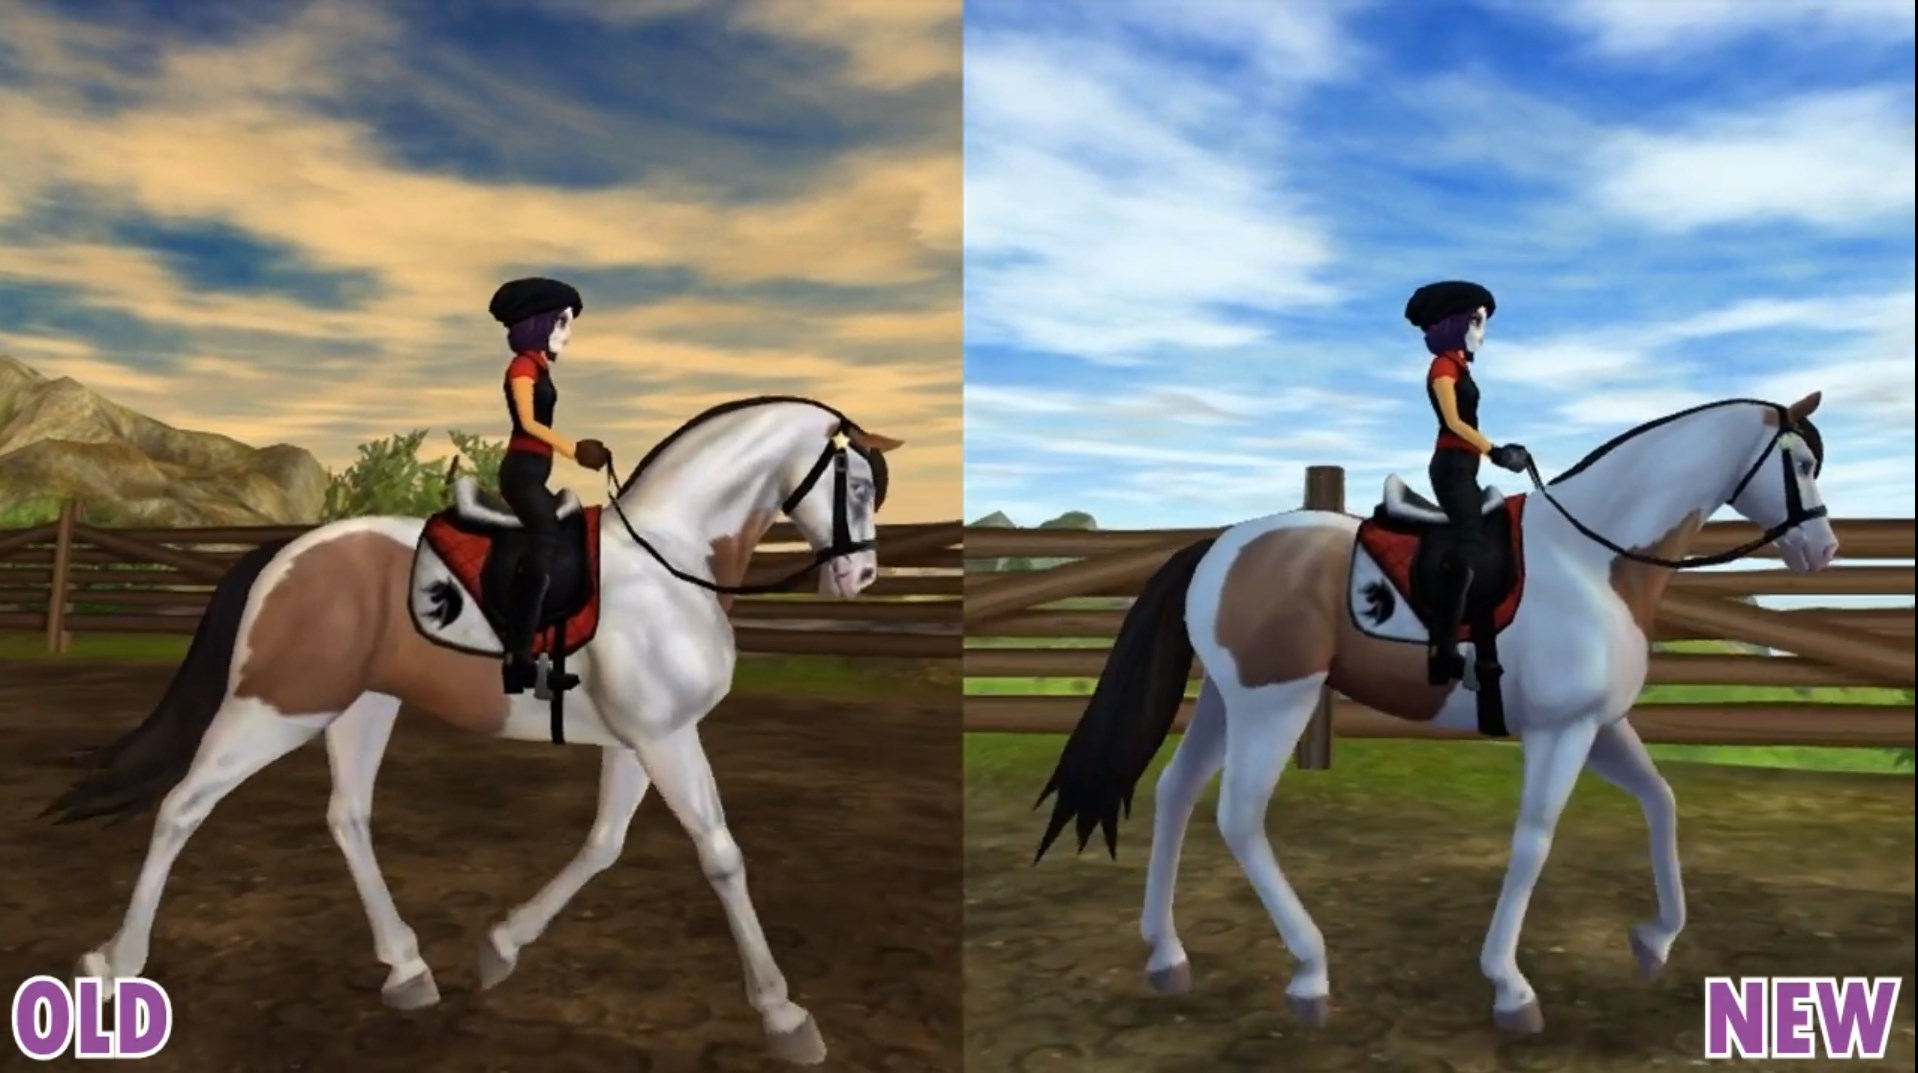 The new starter horse more realistic animations and proportions, and a stylized texture .  Image Source